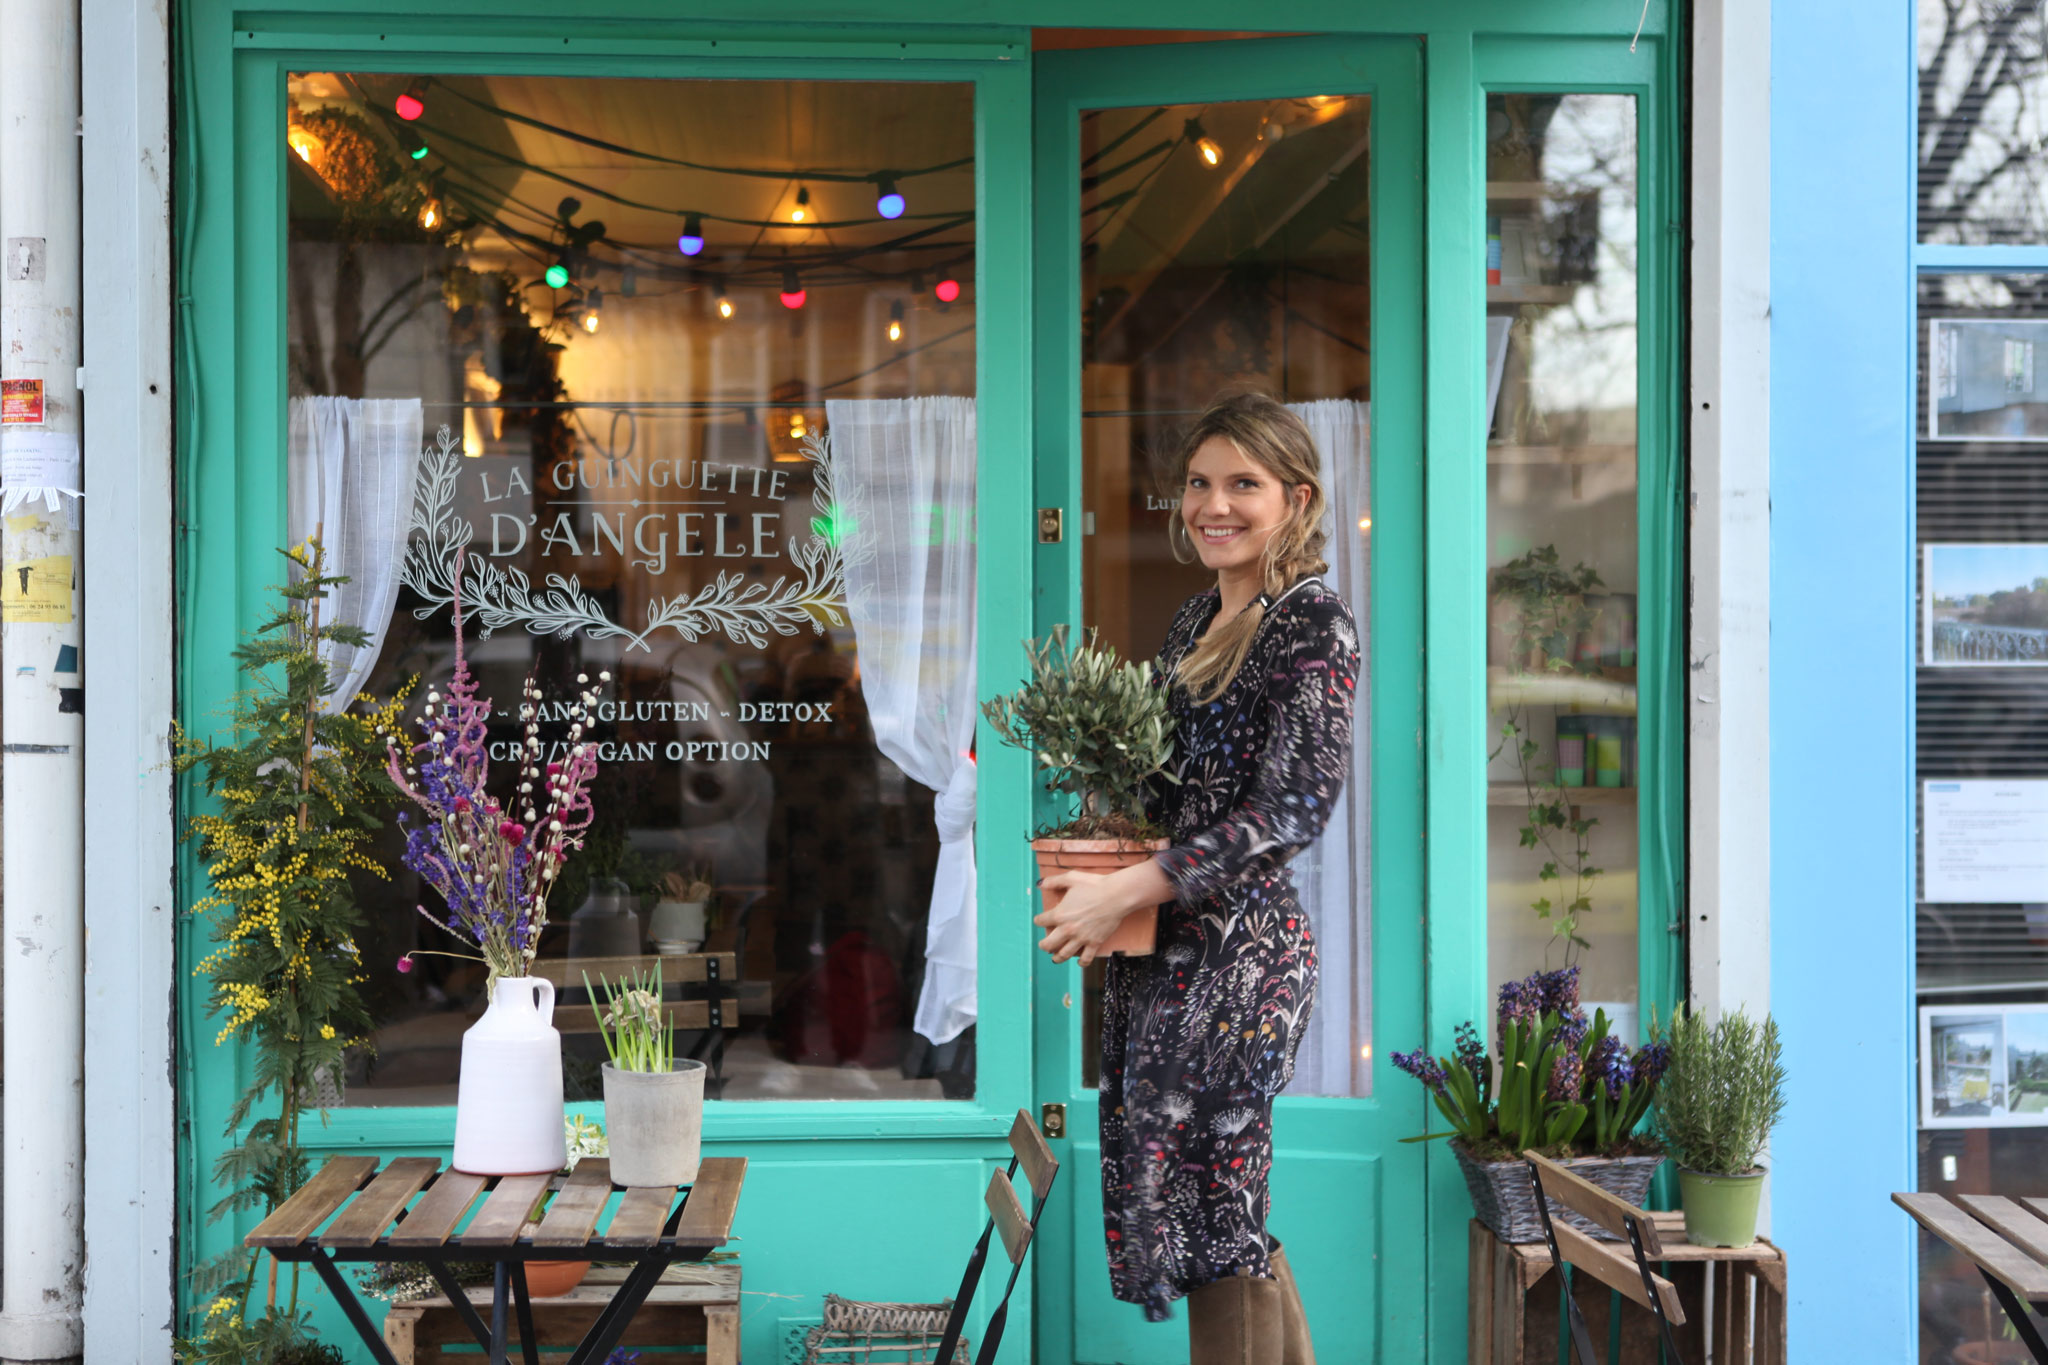 One of the best gluten-free restaurants and bakeries in Paris is la Guiguette d'Angèle, with its bucolic decor of fresh flowers, and Angèle's smile, who you can see here as she carries a small potted olive tree to the terrace outside the restaurant.